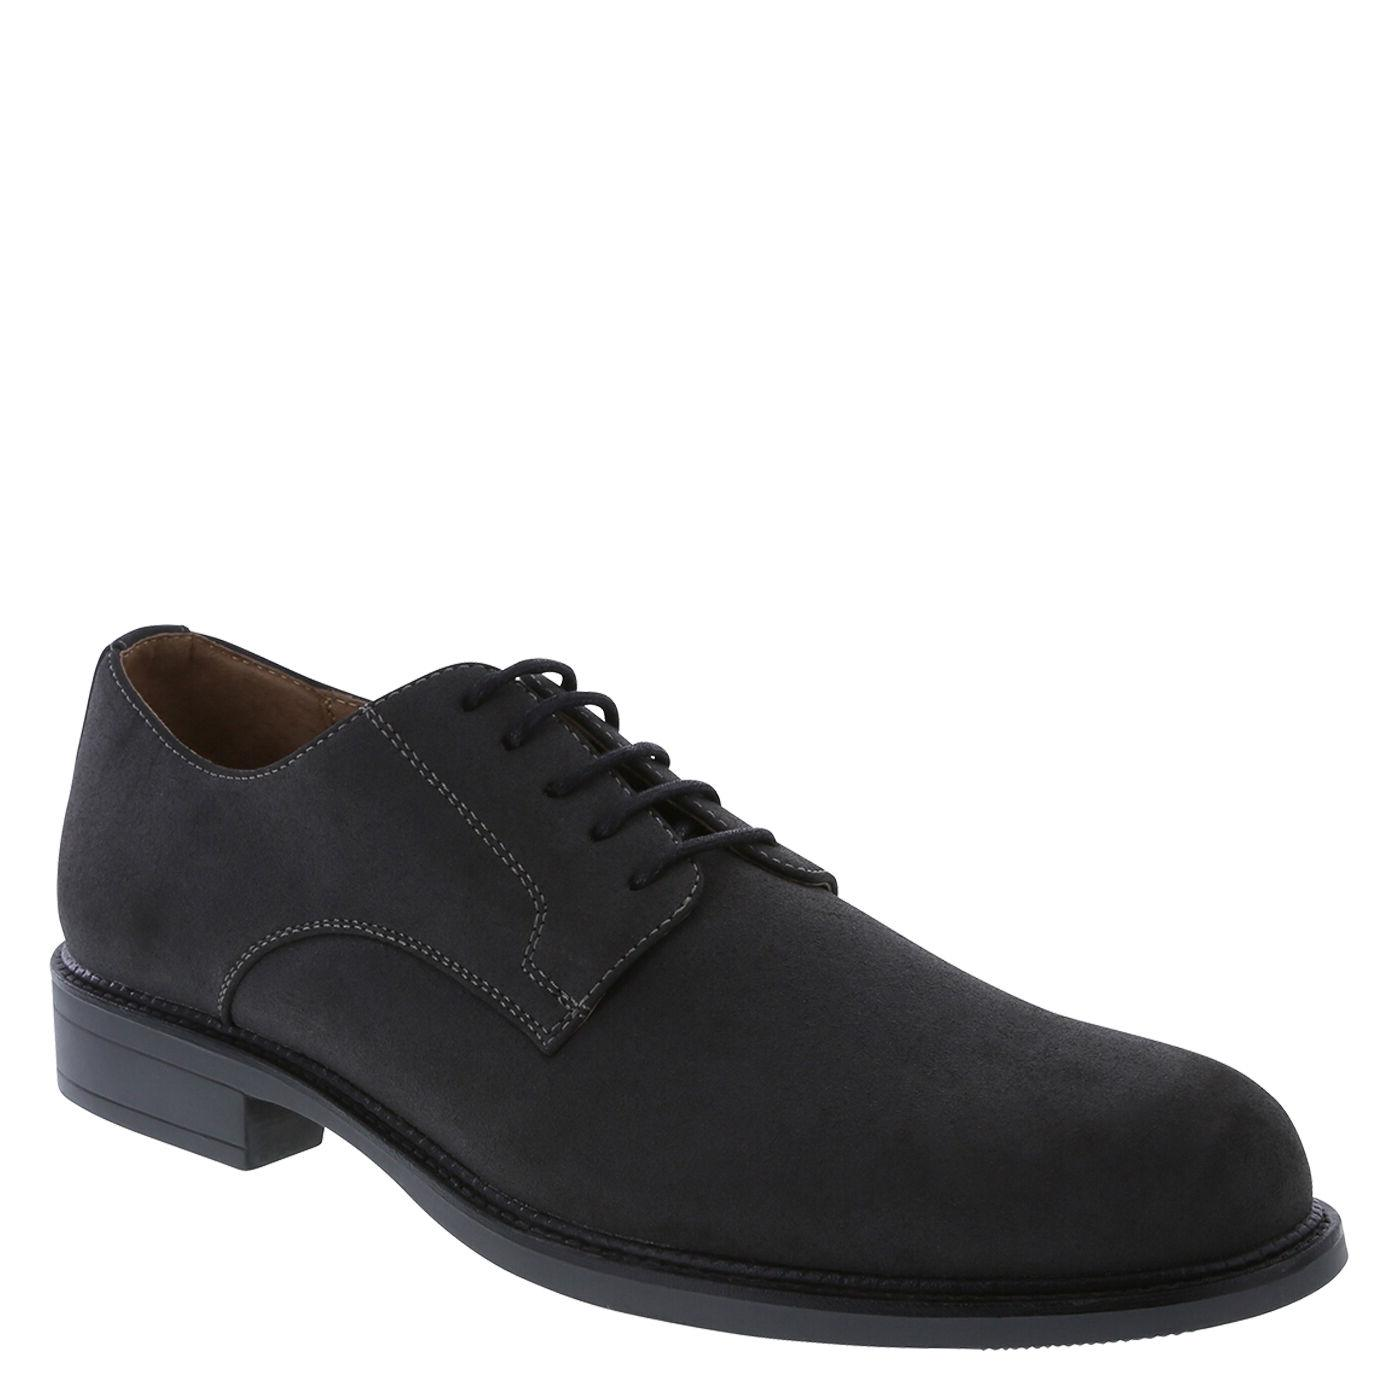 Dexter Men's Chad Oxford Dress Shoes